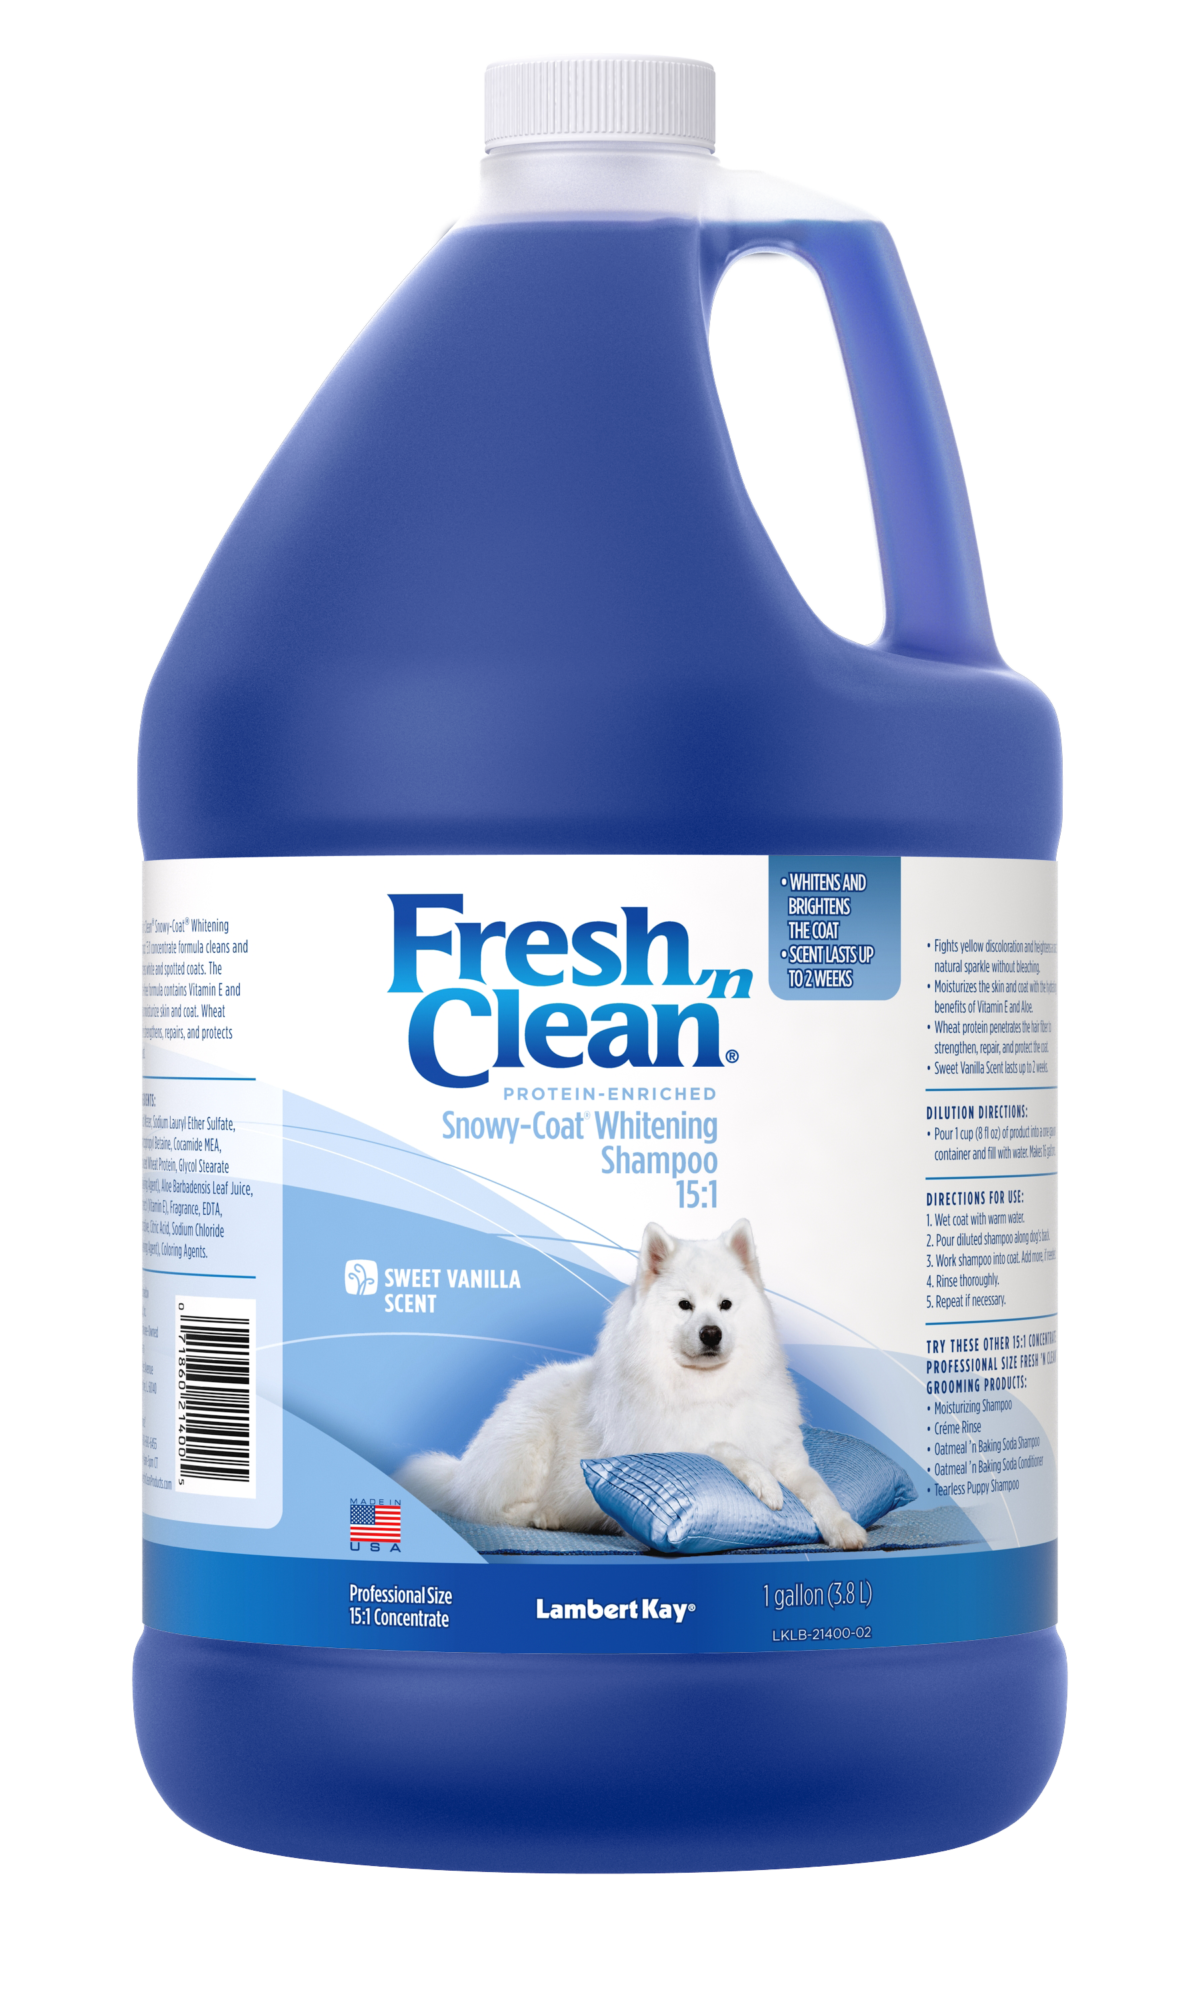 Fresh N Clean Snowy Coat Whitening Shampoo Vanilla Scent 15 1 Concentrate Petag En Us